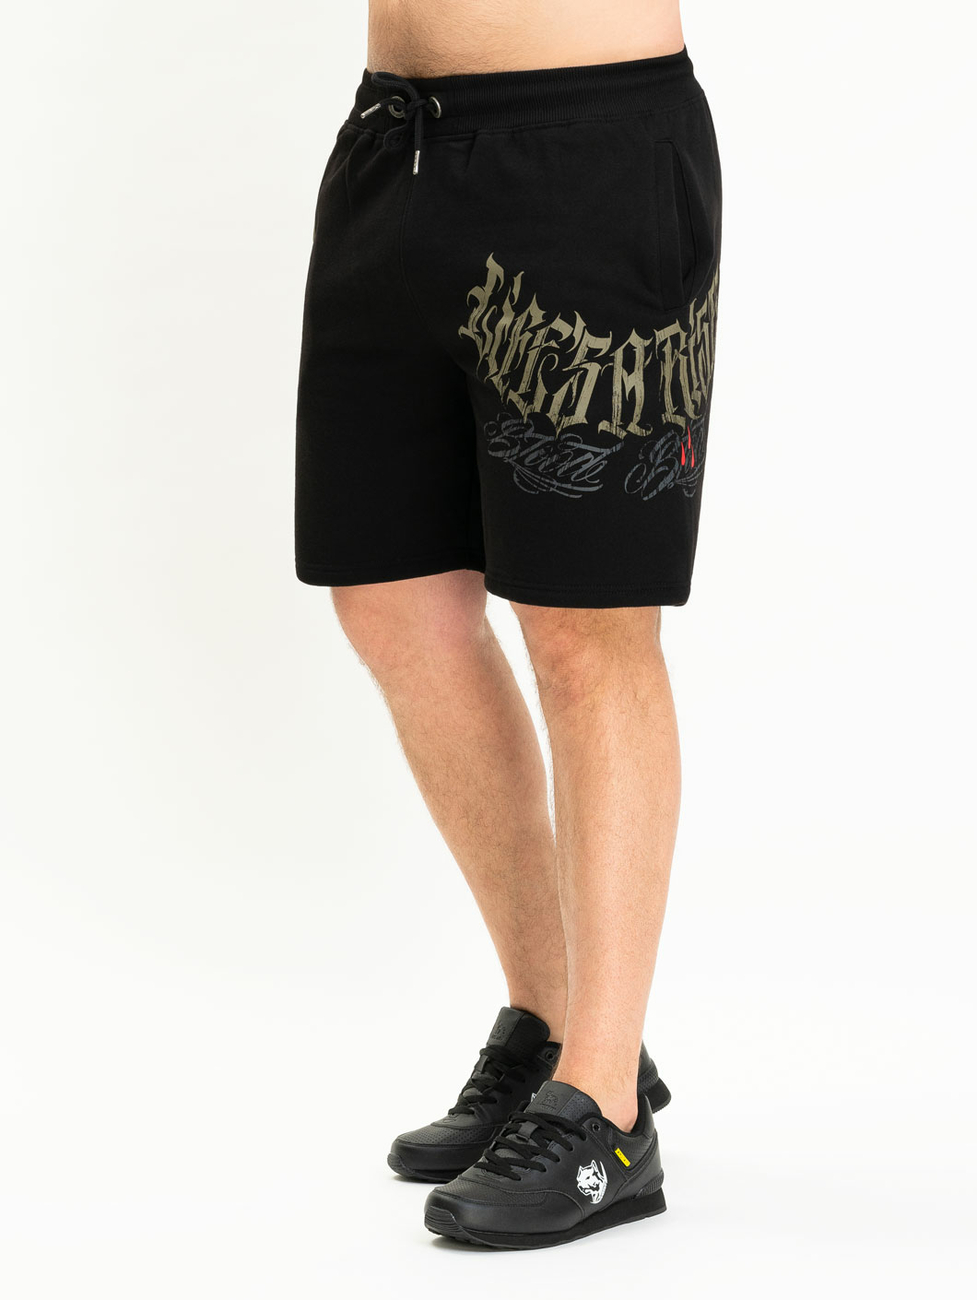 Blood In Blood Out Miembros Sweatshorts 2XL